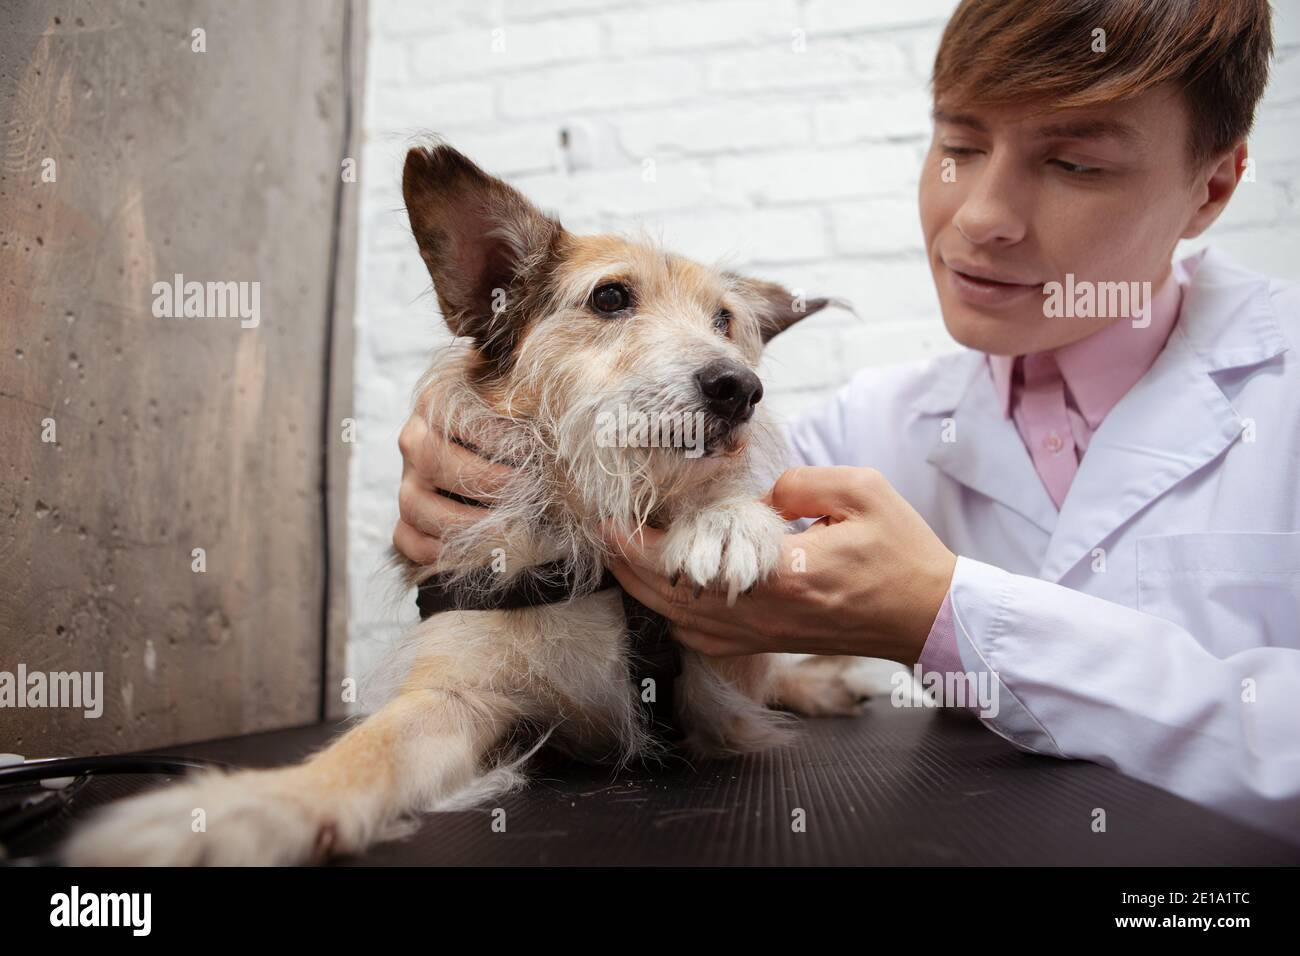 Adorable fluffy mixed breed shelter dog having his paws examined by professional veterinarian Stock Photo